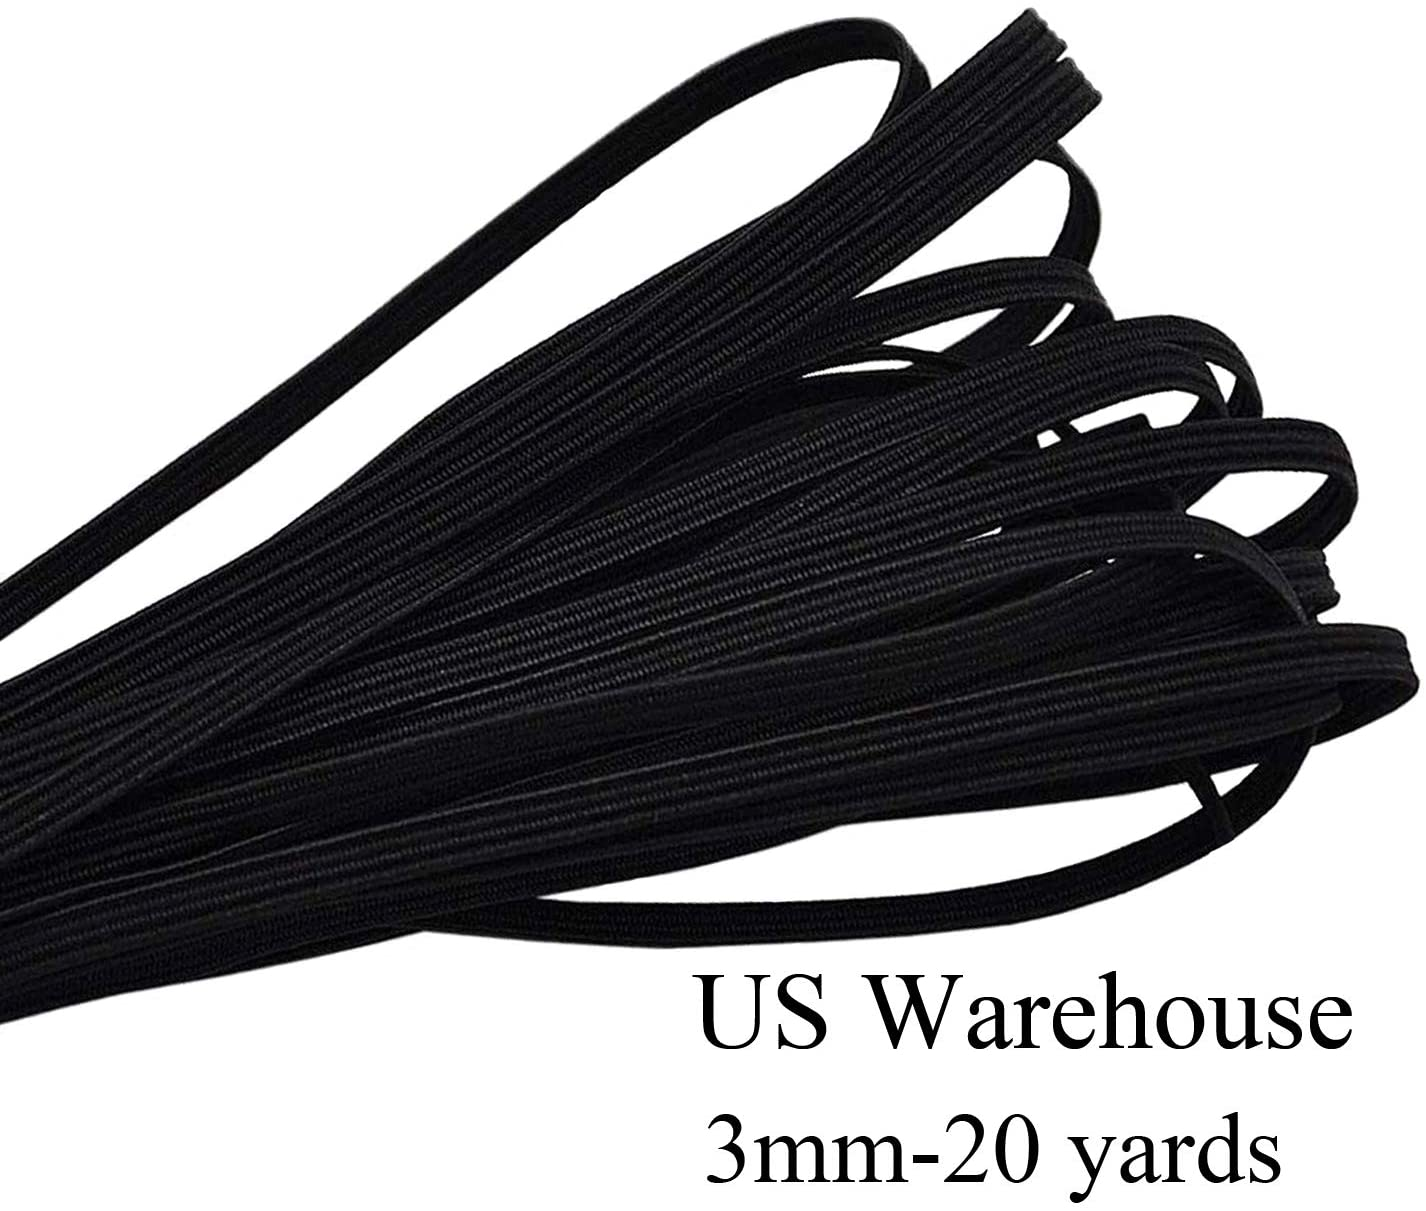 INHHOME Black Elastic String for Masks 1/8 inch Elastic Cord Band for Sewing 10/20 Yards Flat Rope Strap